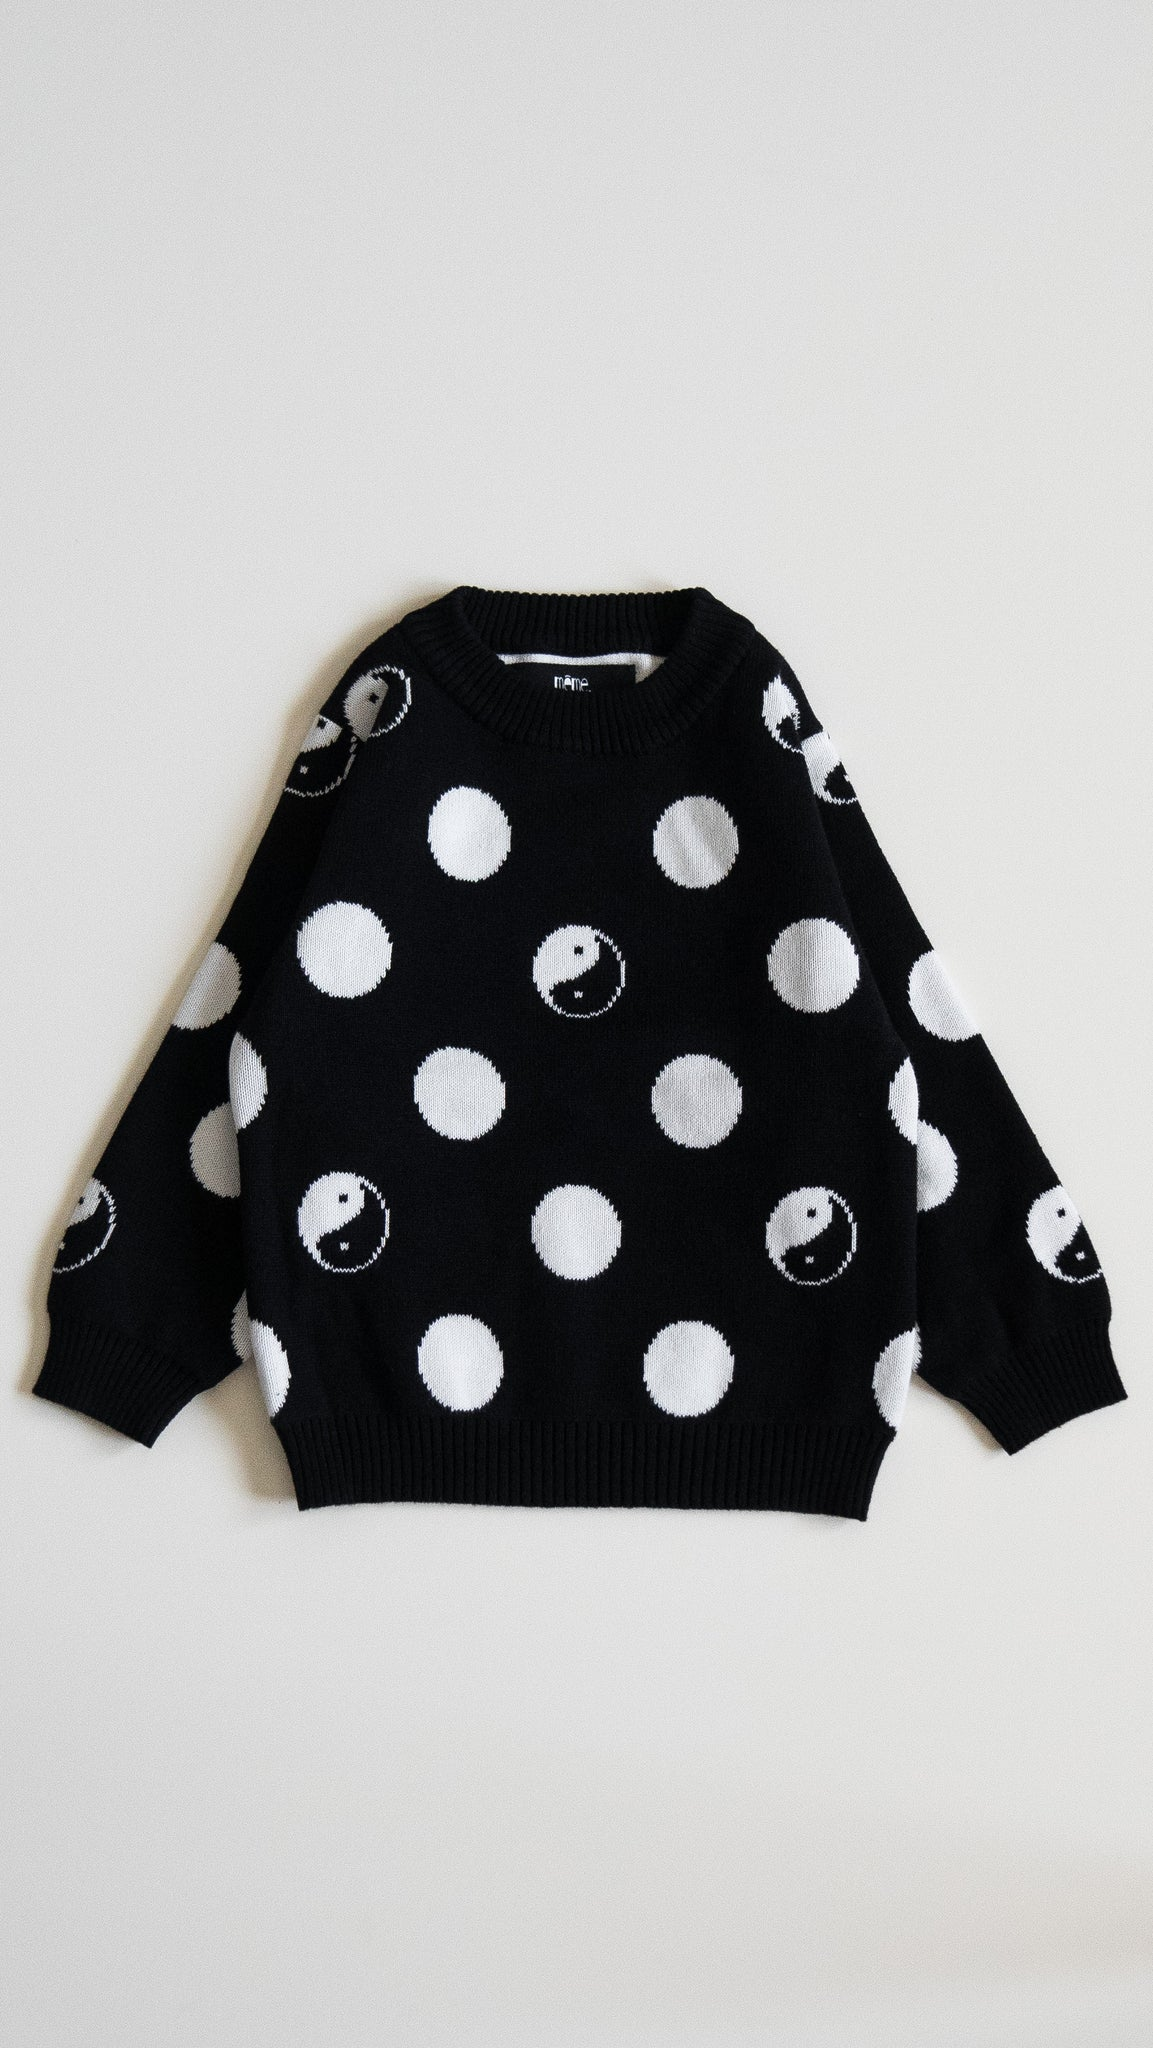 yin/yang knit sweater